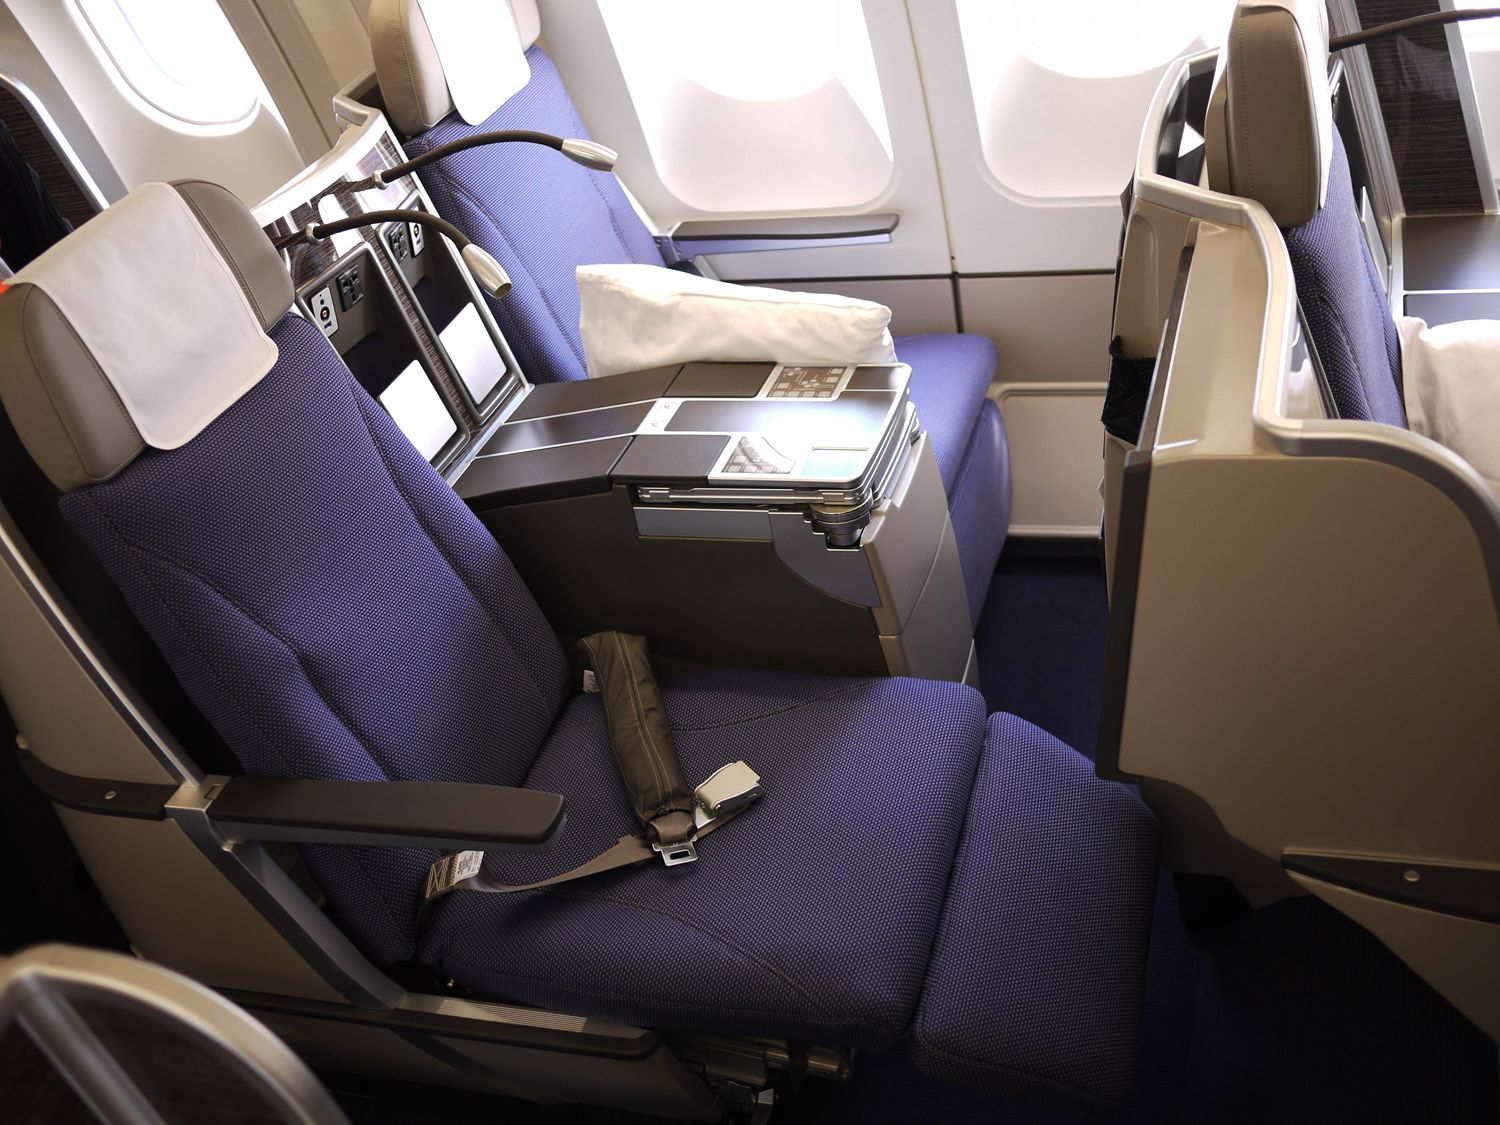 Airline Seat Maps Flights Shopping And Flight Information Best Airplane Seats